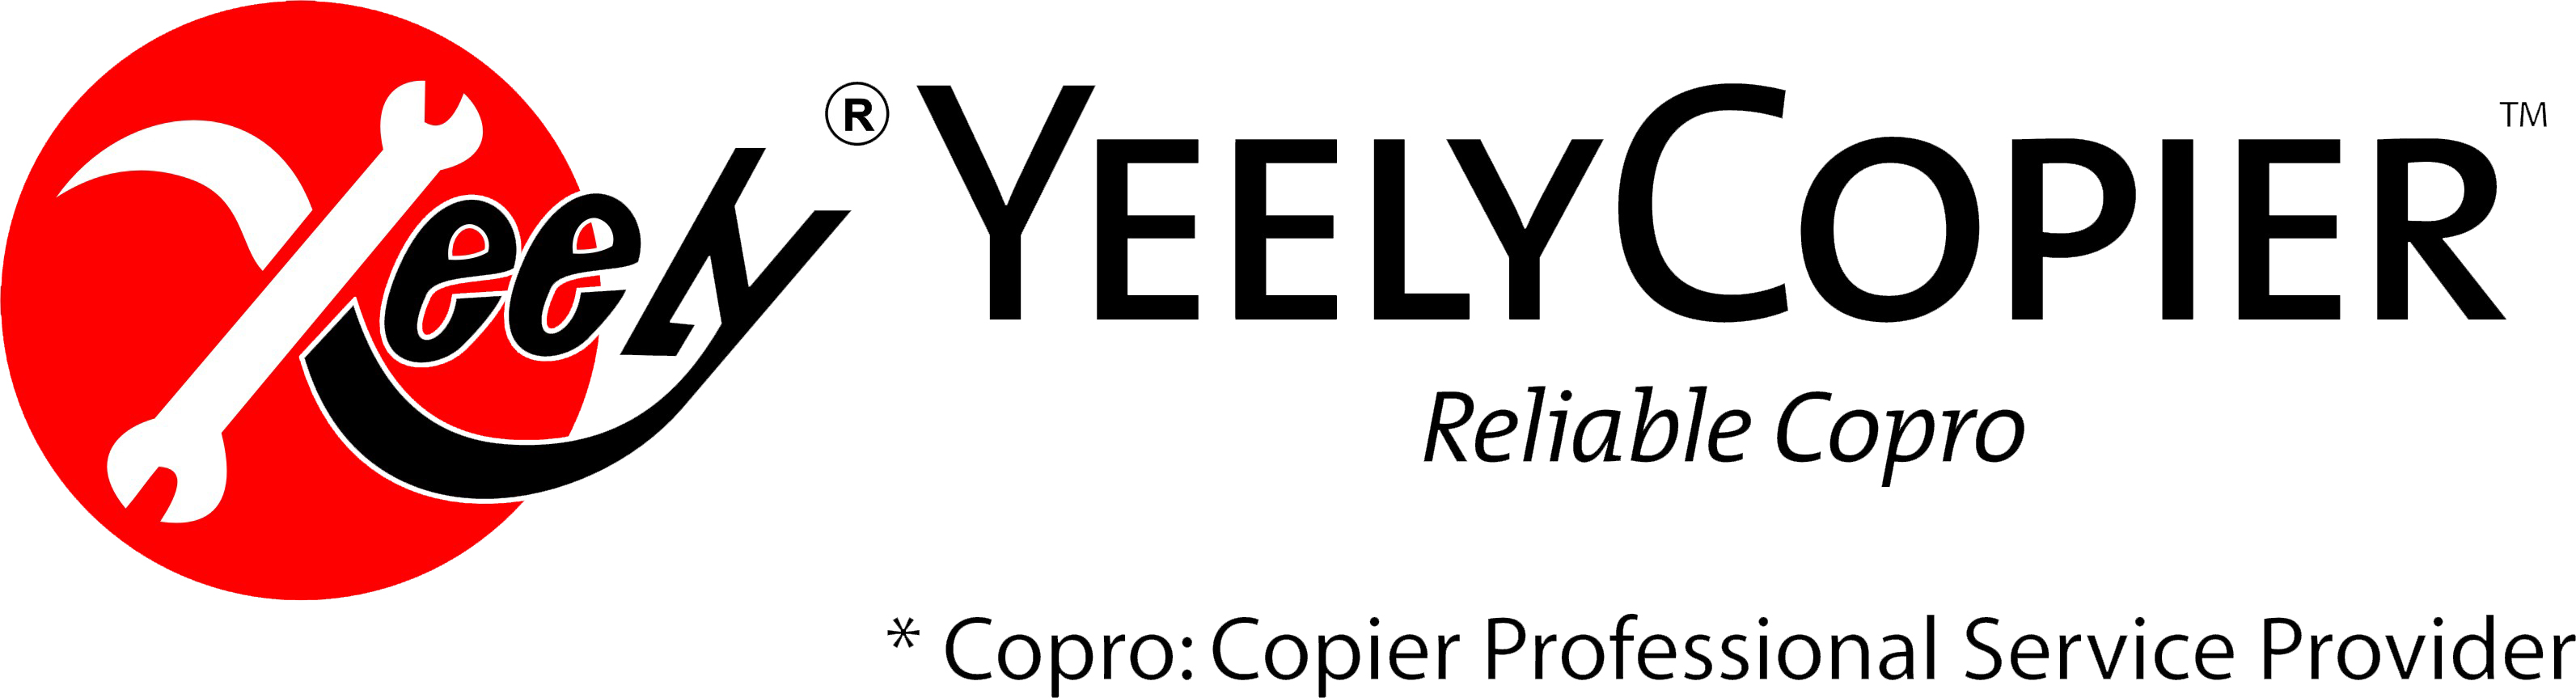 Yeely Copier Sdn Bhd